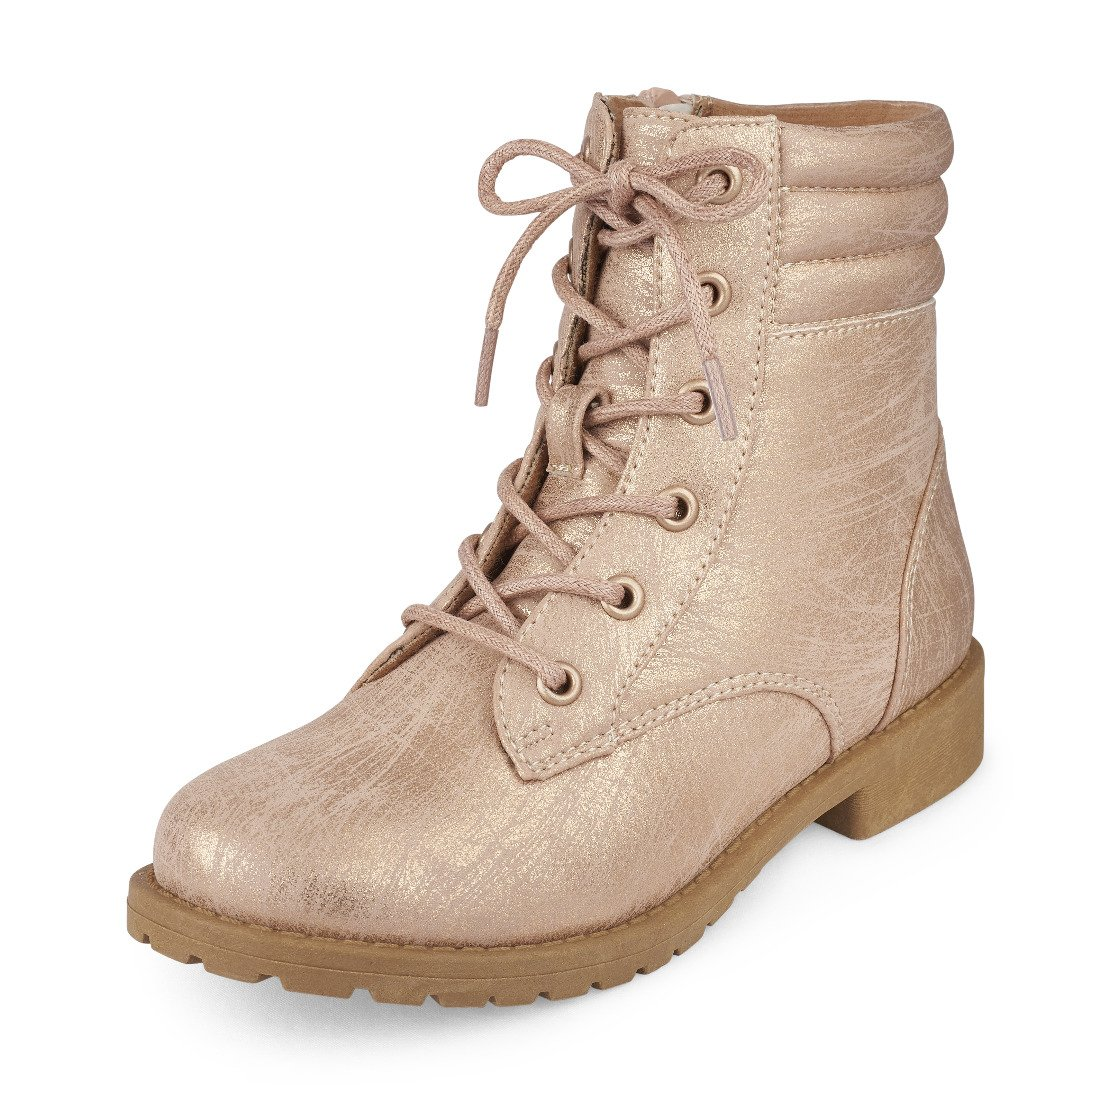 The Children's Place Girls' Combat Fashion Boot, Rose Gold-Boot-8, Youth 13 M US Little Kid